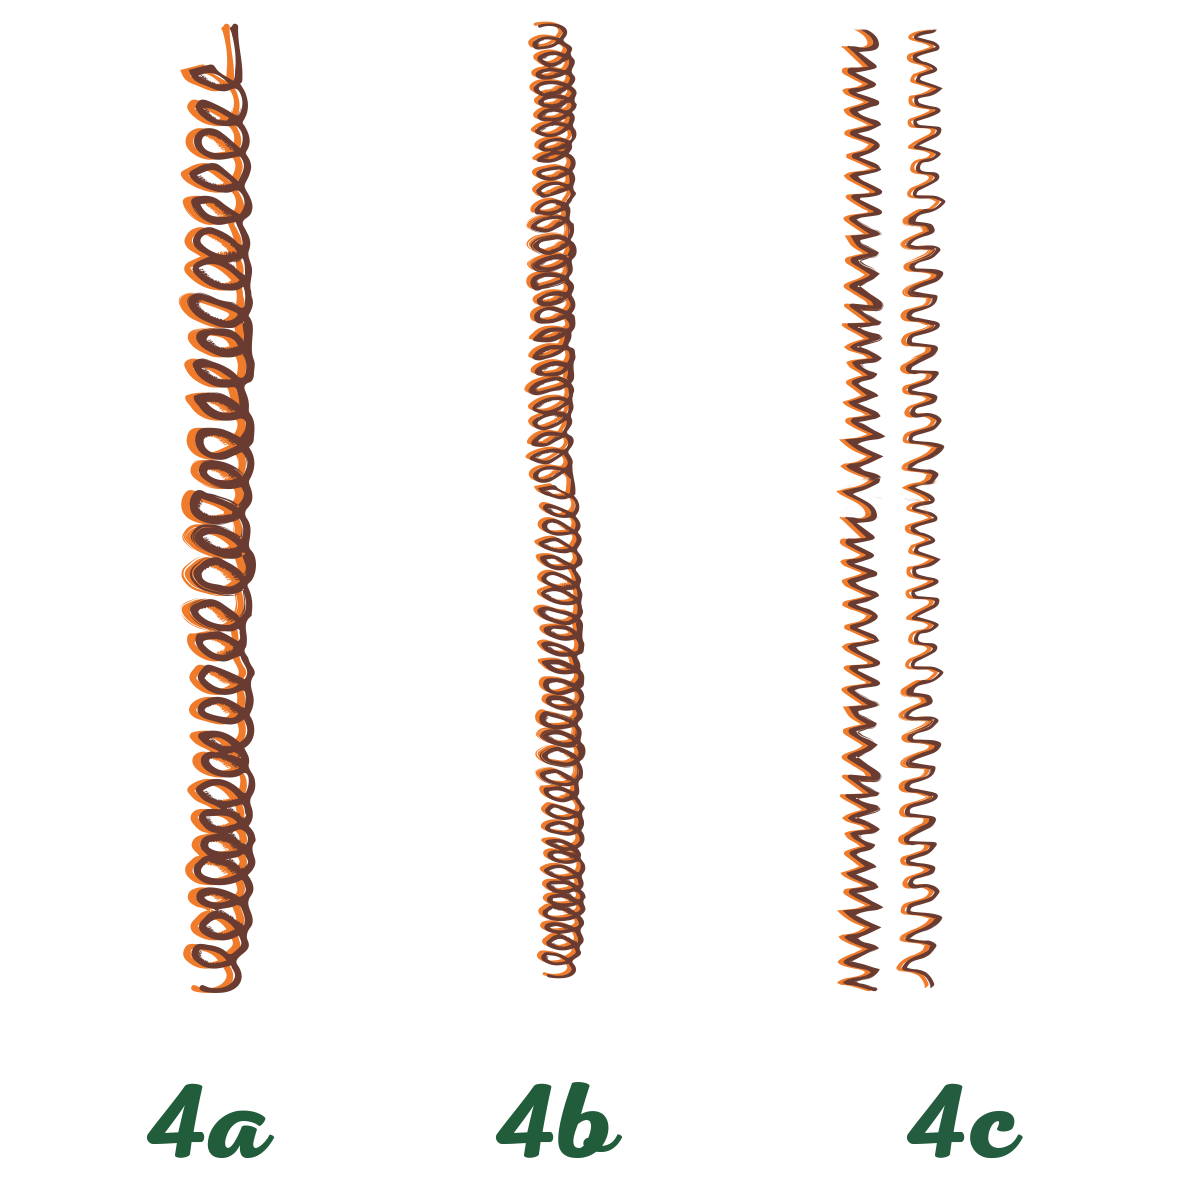 Type 4 - Coily sub classification image